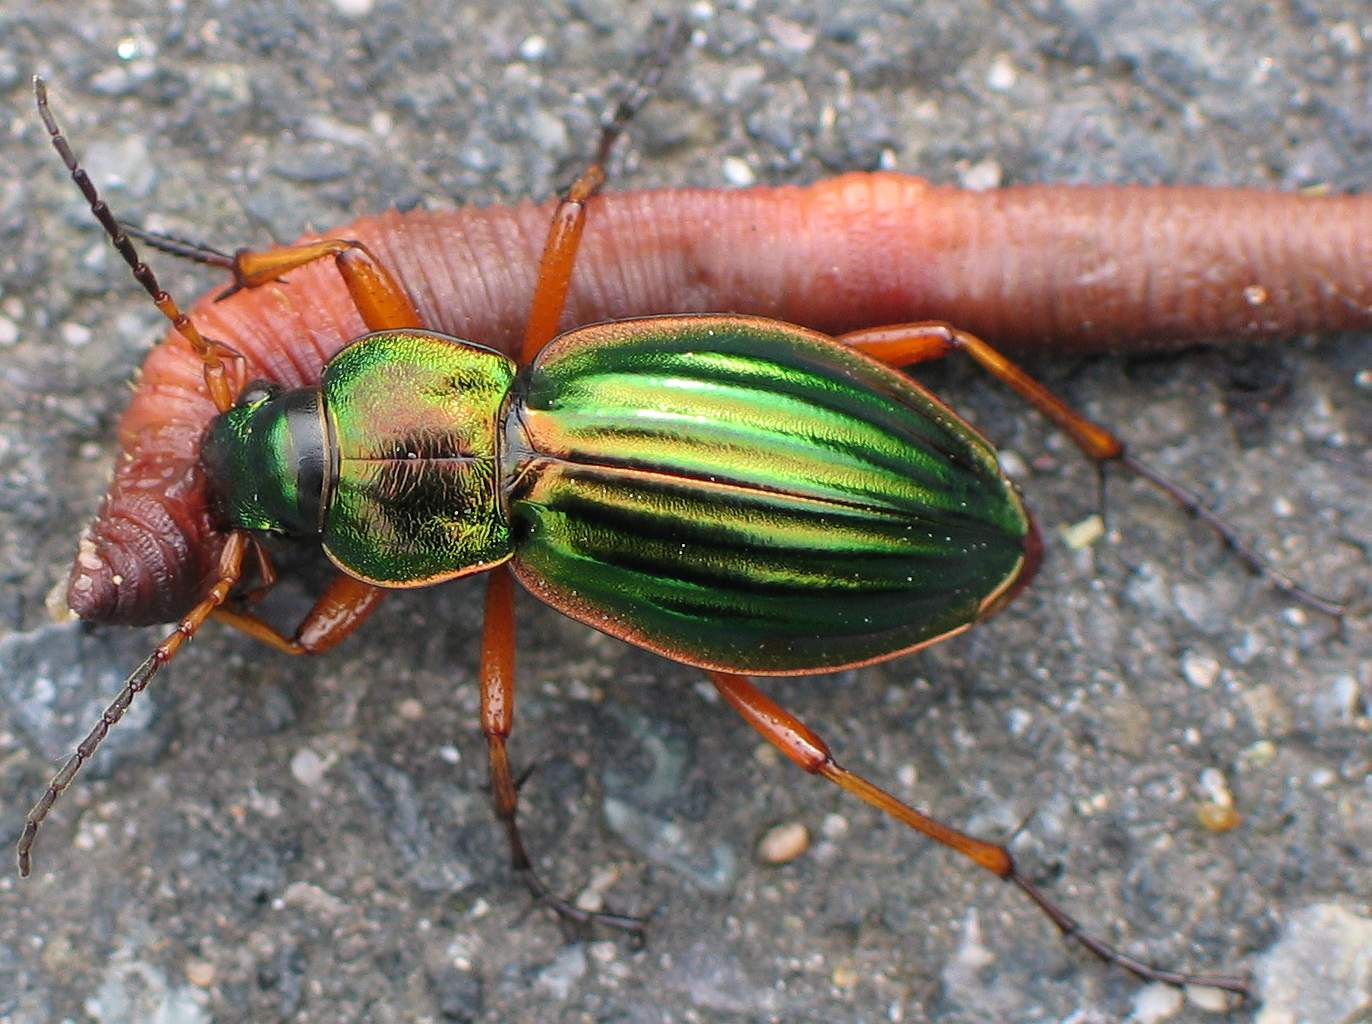 Get rid of Ground Beetles 2020 - Image By wikipedia